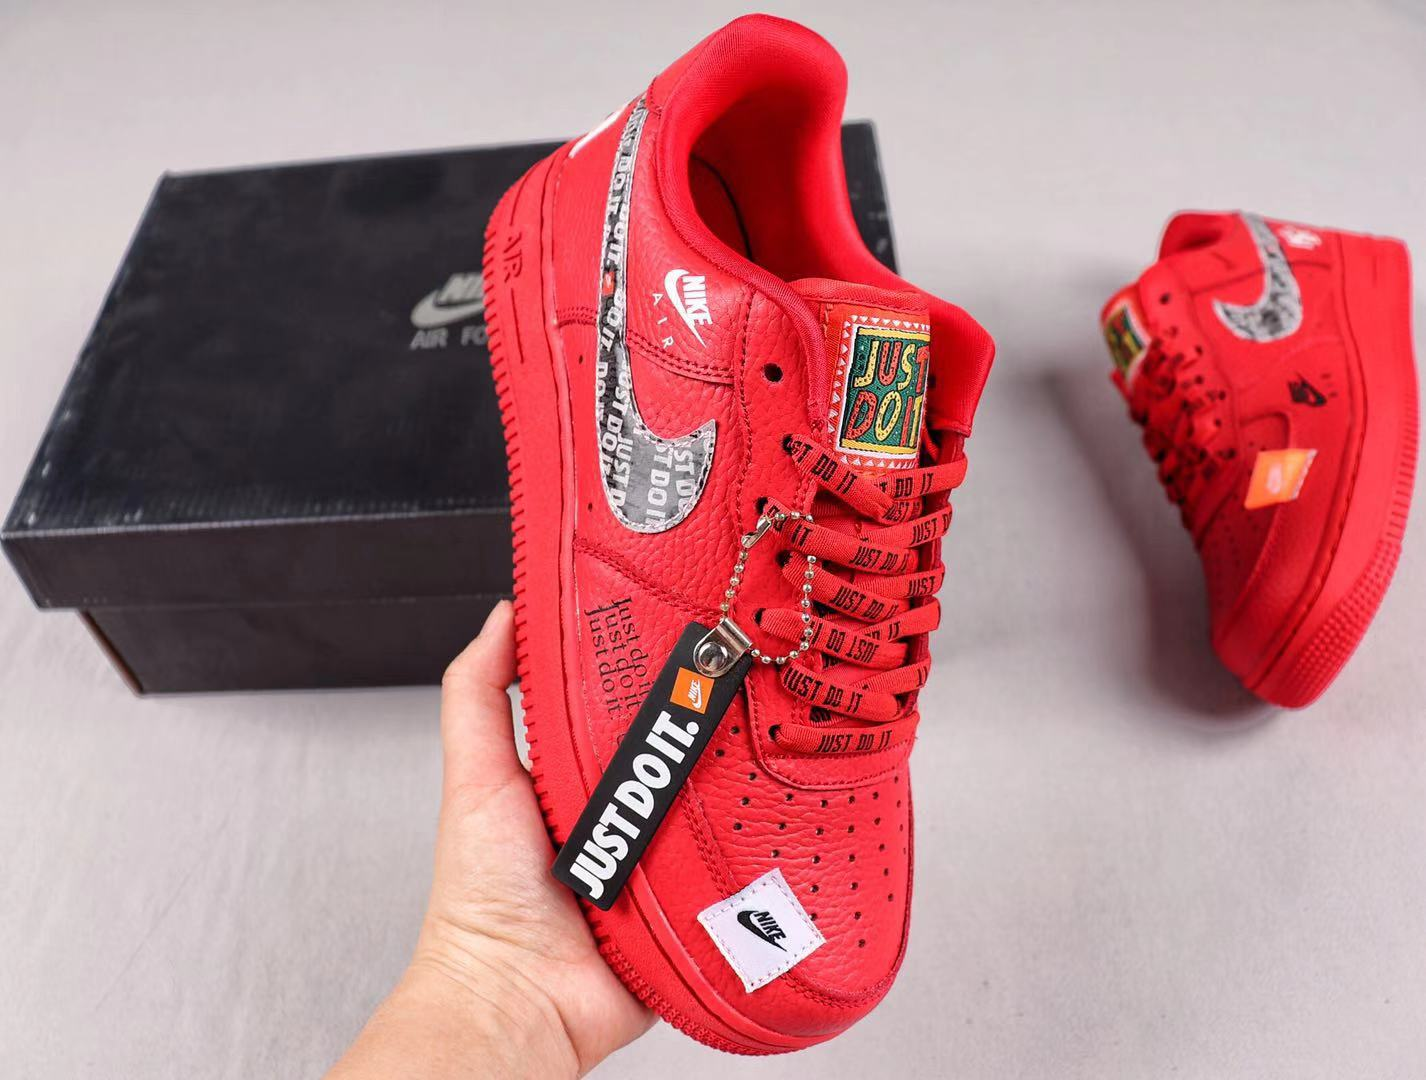 """Nike Air Force 1 Low """"Just Do It"""" Red Men's Sneakers Cheap Price AR7719-006"""